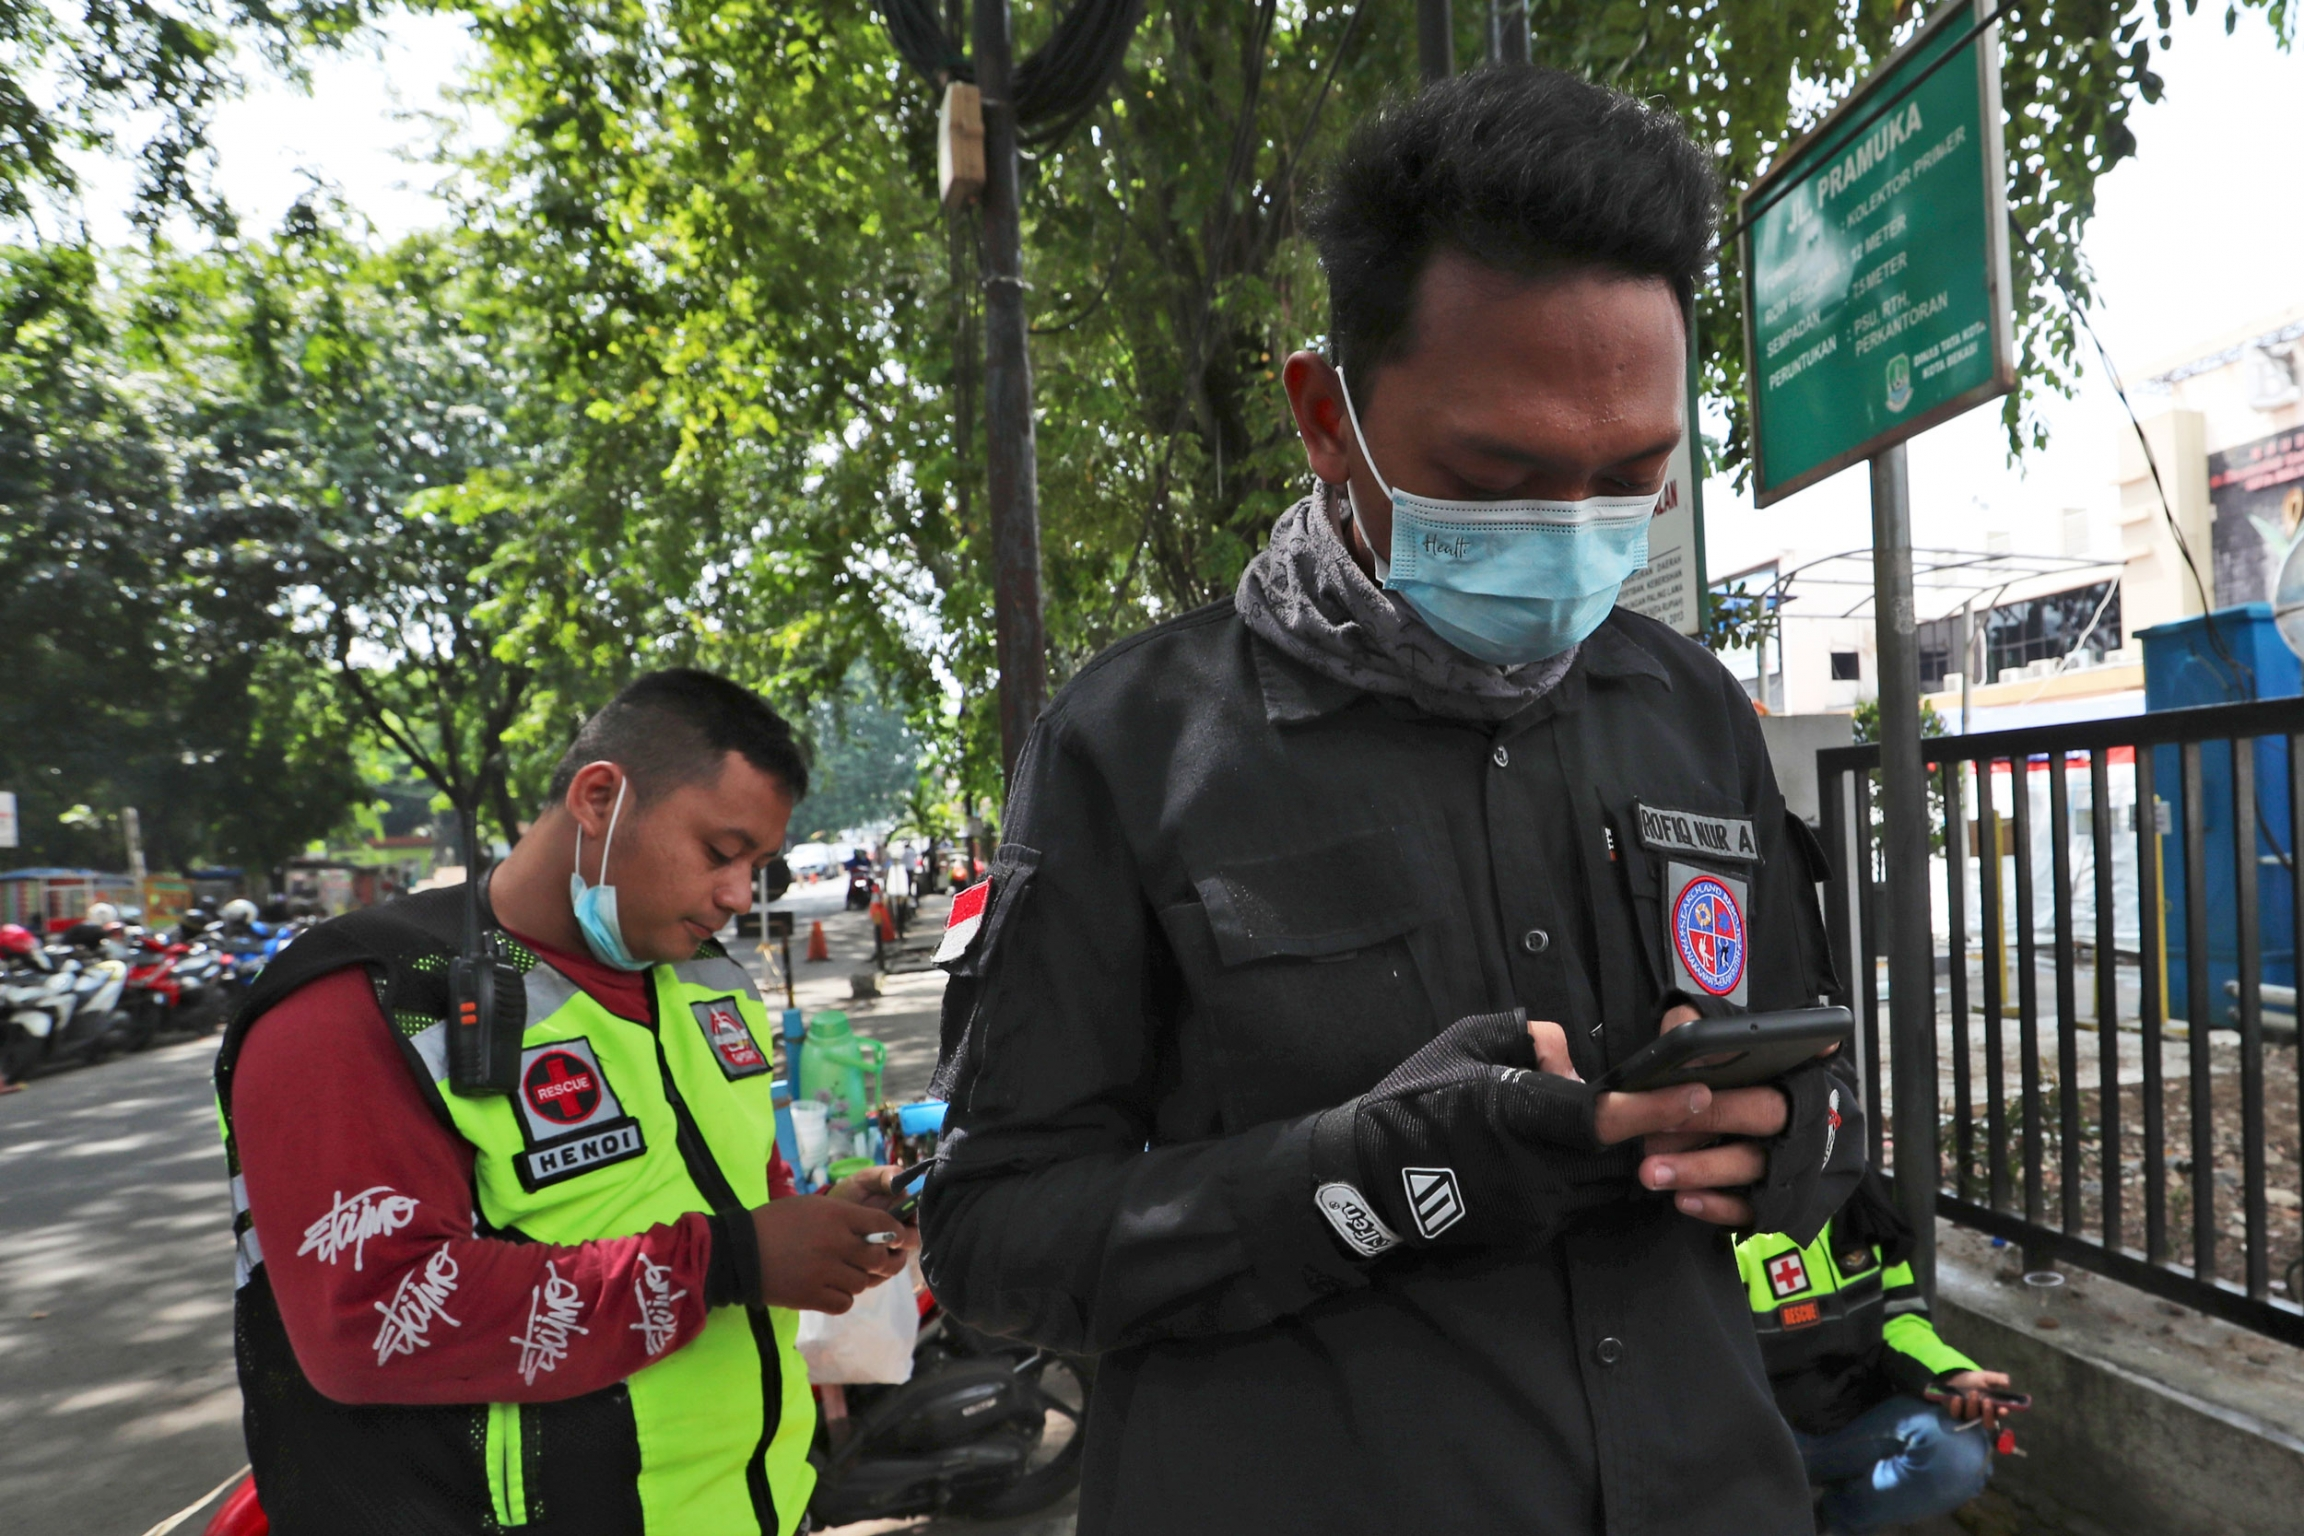 Two men are shown looking down at their mobile phones while wearing medical face masks.